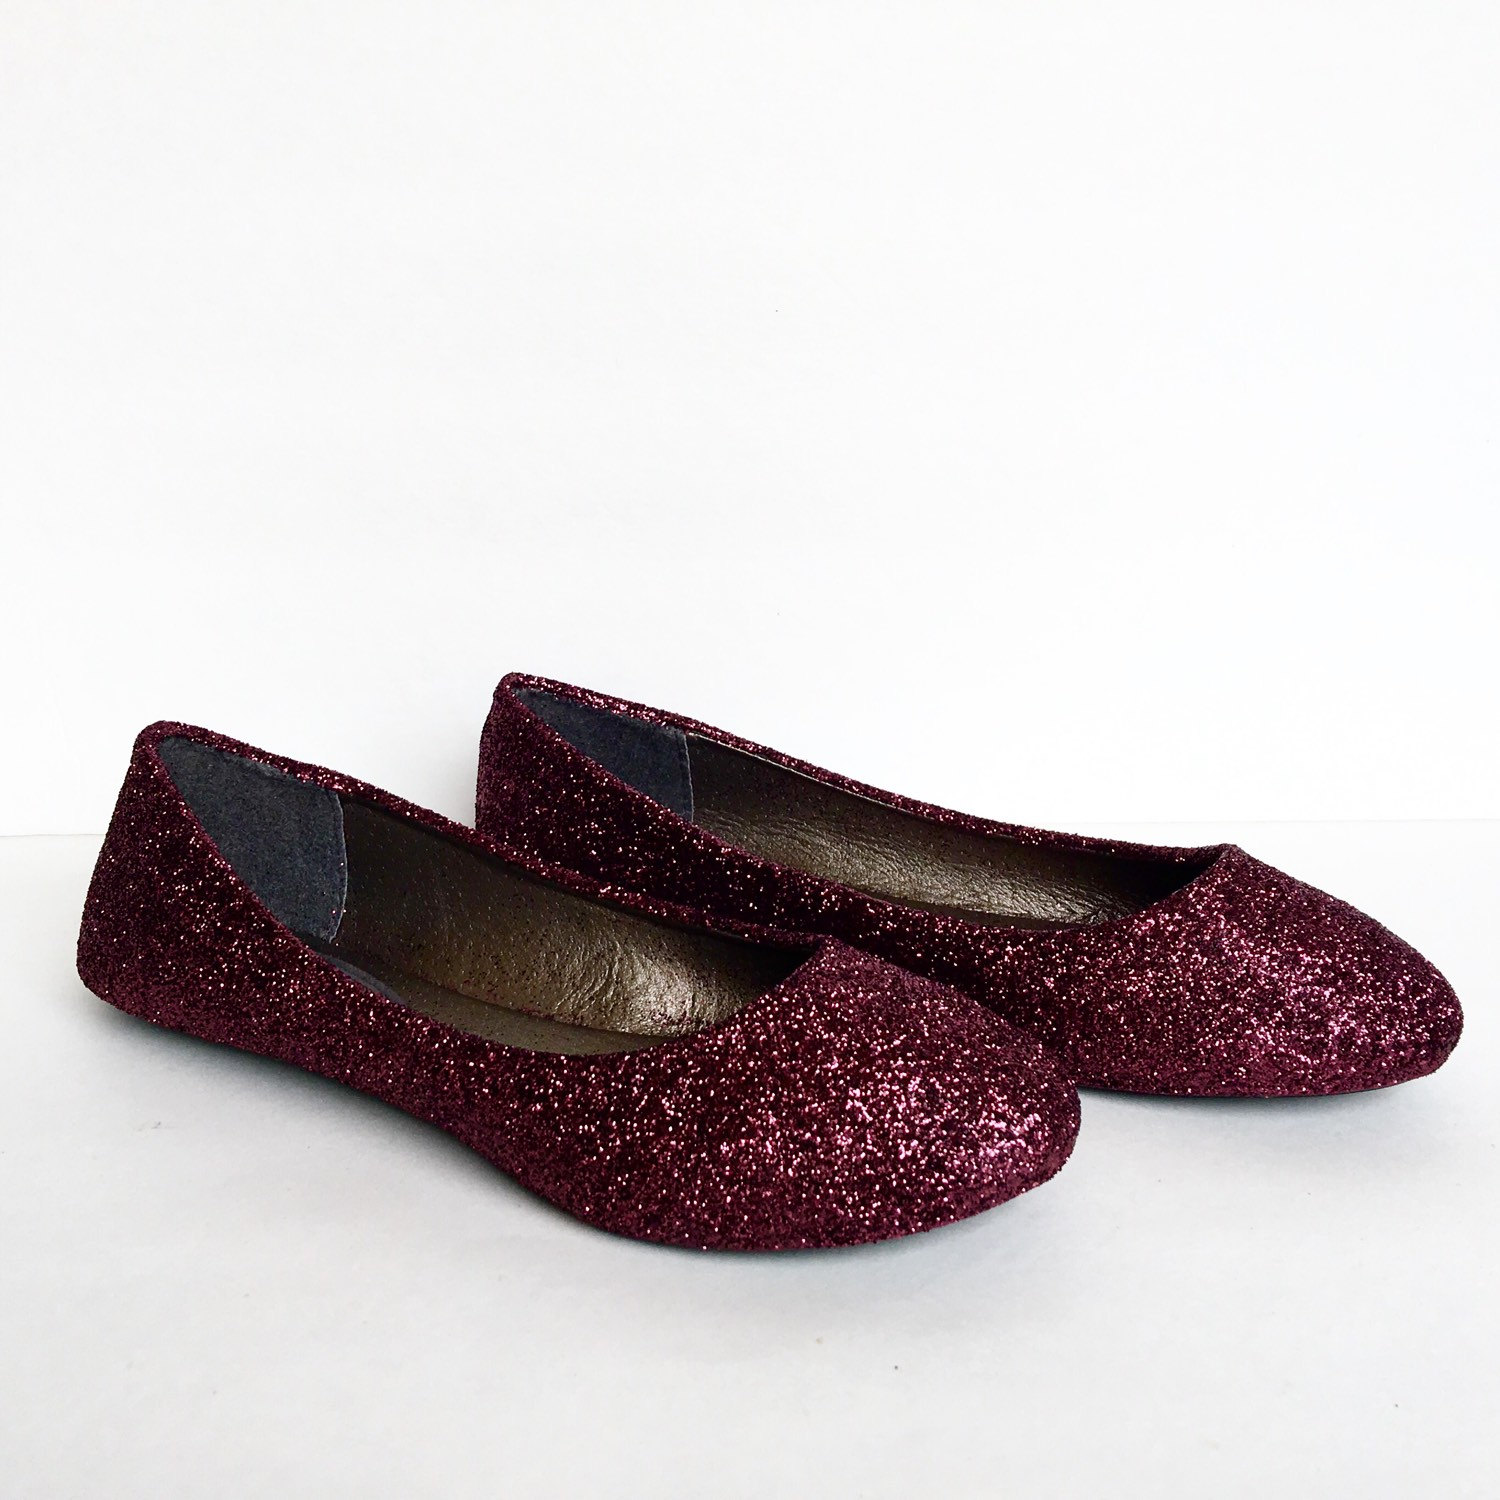 063ac59bf68 Burgundy Flats - Dark Red Glitter Shoes - Maroon Ballet Flats - Sparkly Wedding  Shoes - Red Prom Shoes - Glitzy Flats - Wine Red Slip Ons on Storenvy